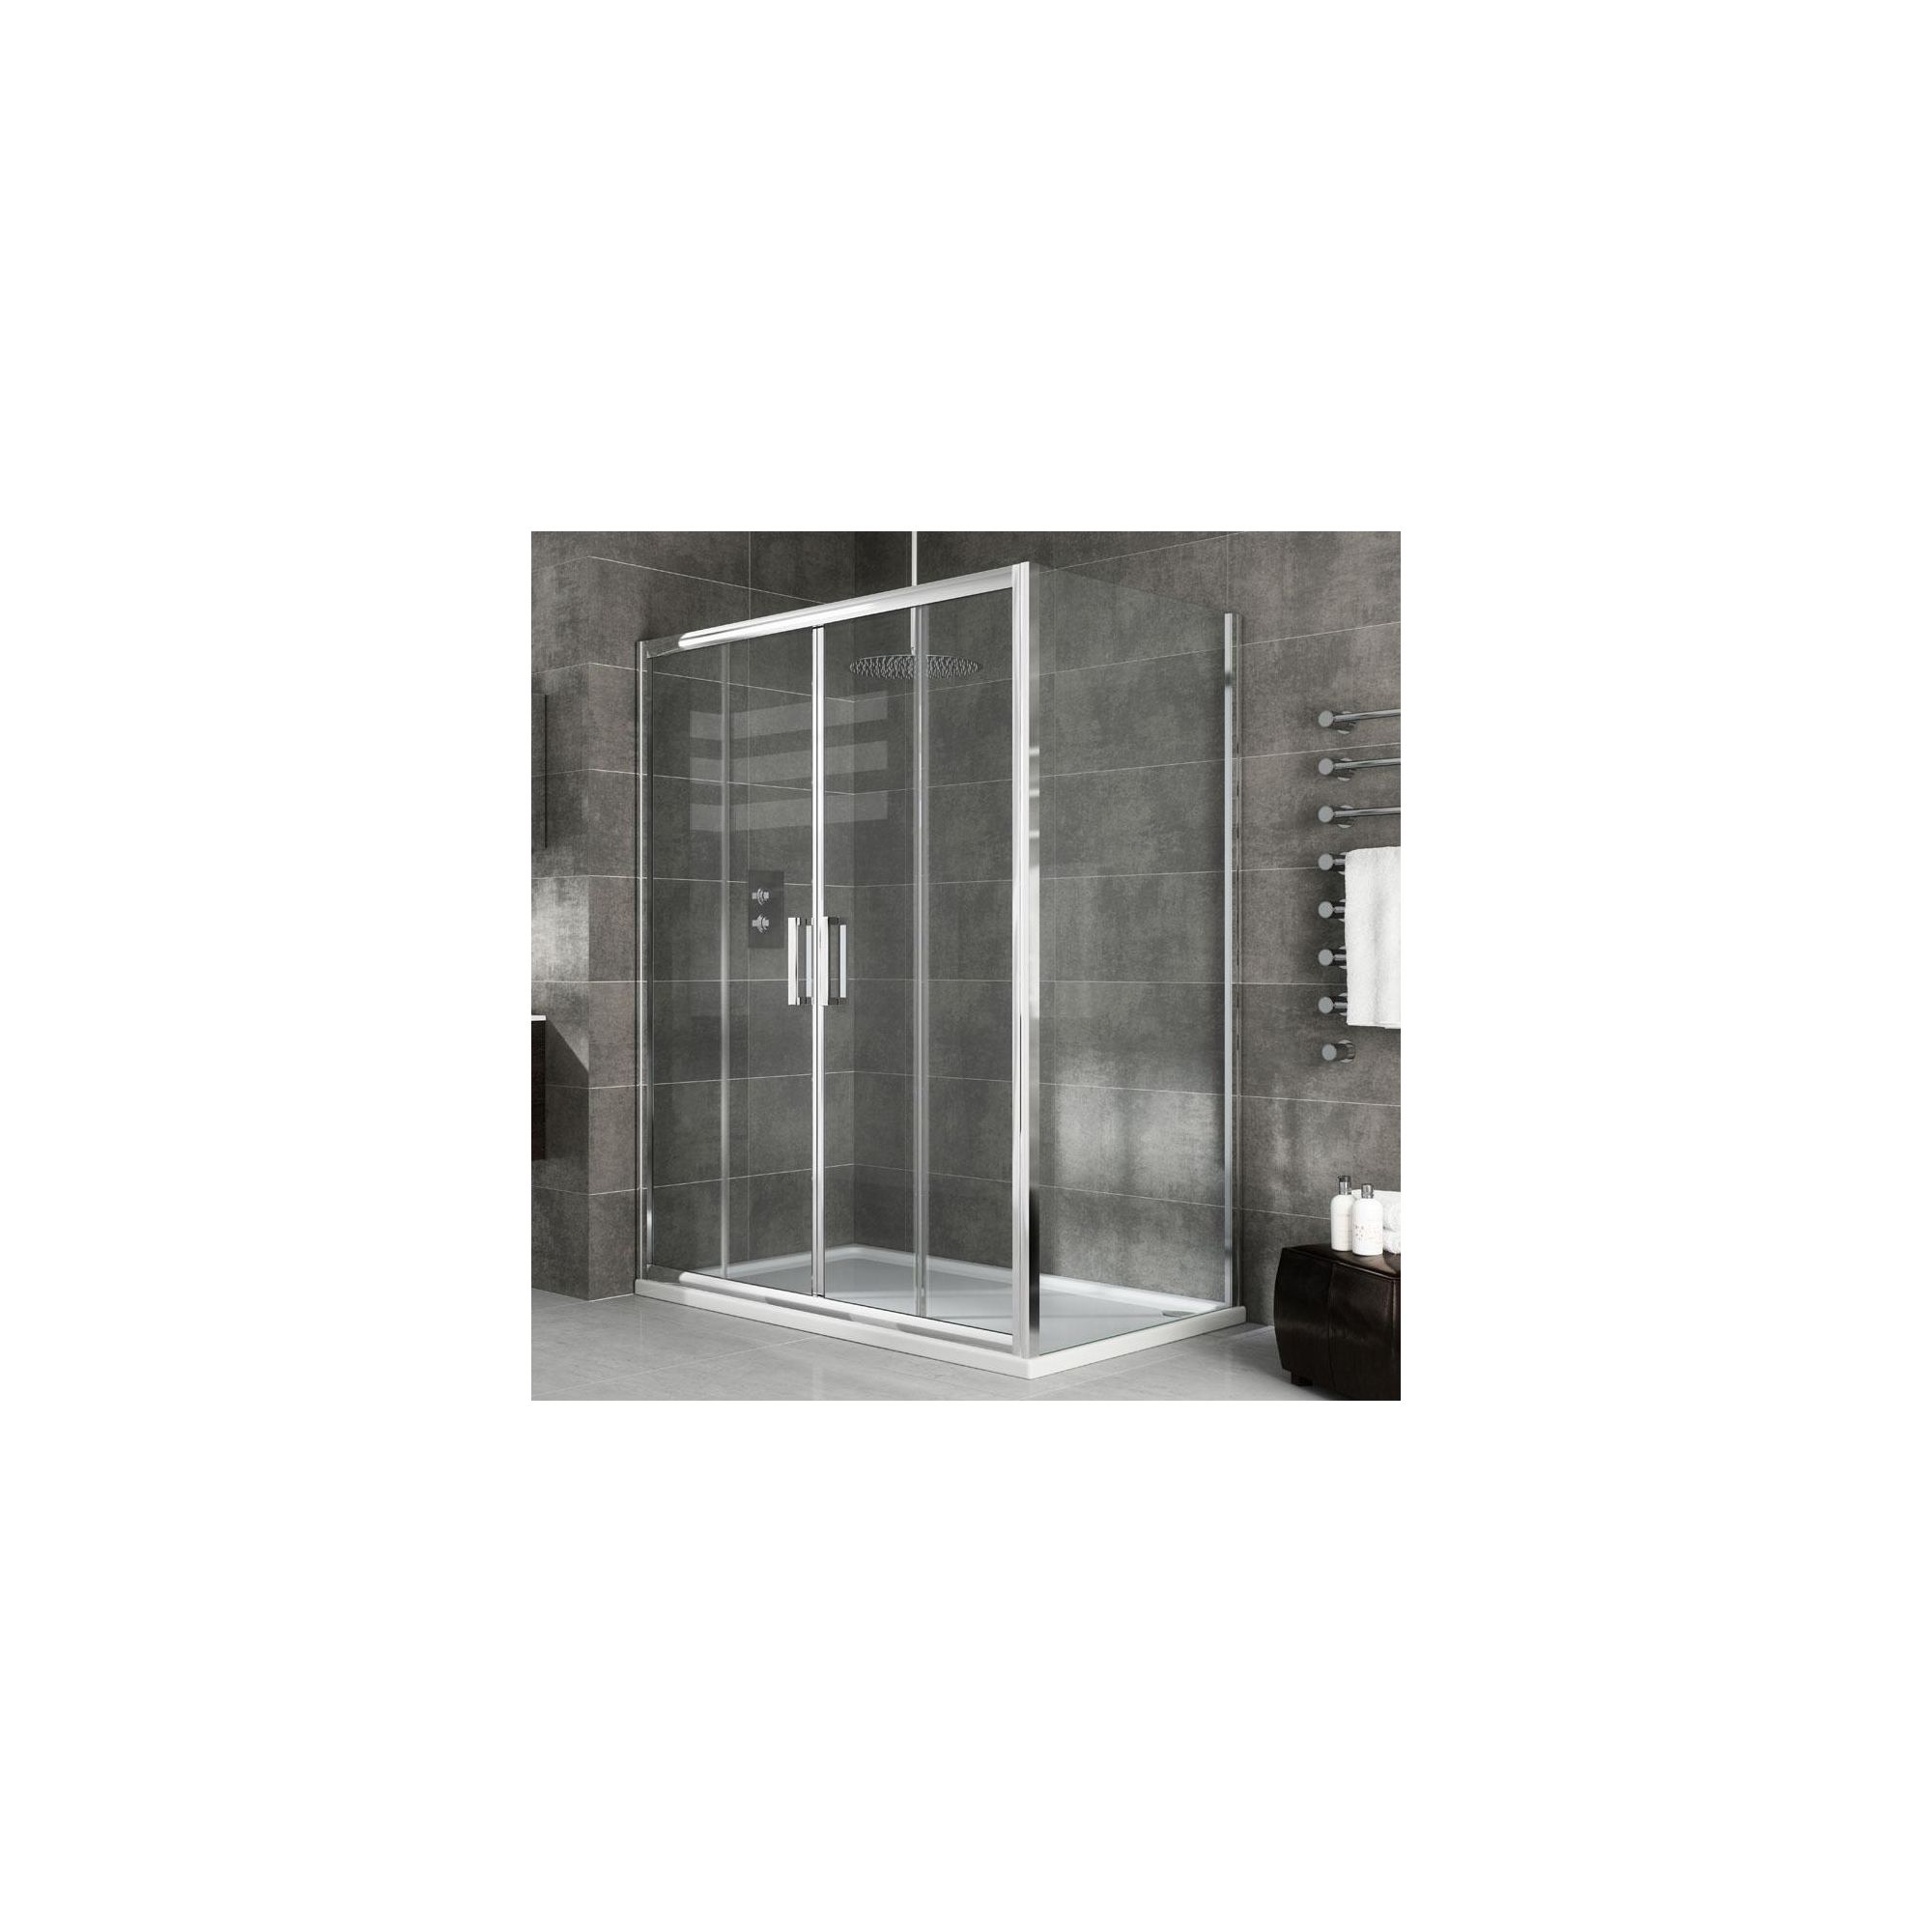 Elemis Eternity Two-Panel Jumbo Sliding Door Shower Enclosure, 1000mm x 900mm, 8mm Glass, Low Profile Tray at Tesco Direct